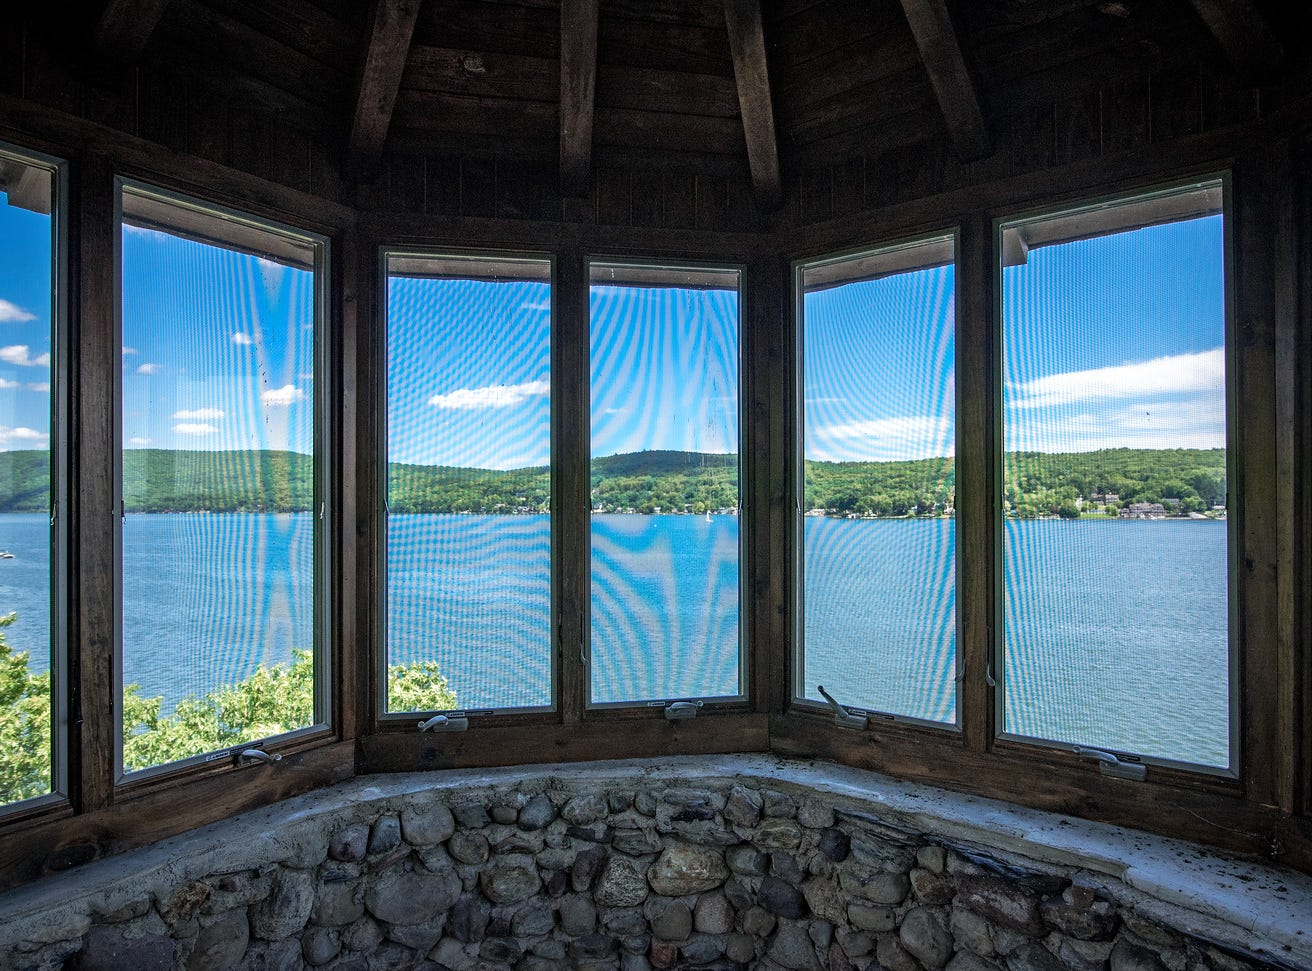 The view from the trademark turret of the castle on the shore of Greenwood Lake in New York State, which has been listed for sale at $14.75 million.